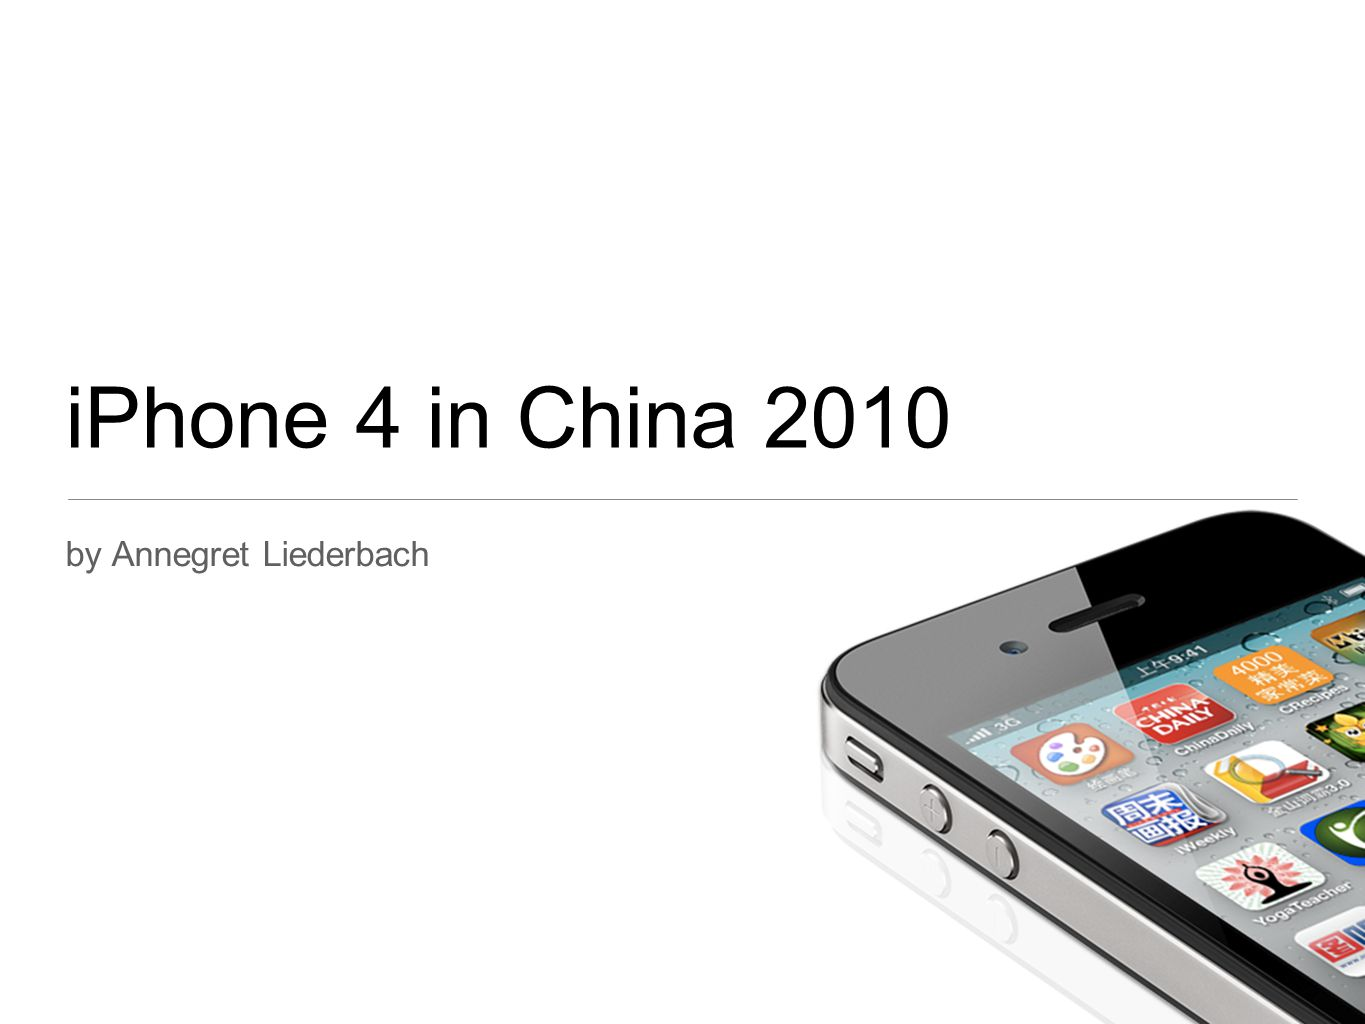 iPhone 4 in China 2010 by Annegret Liederbach